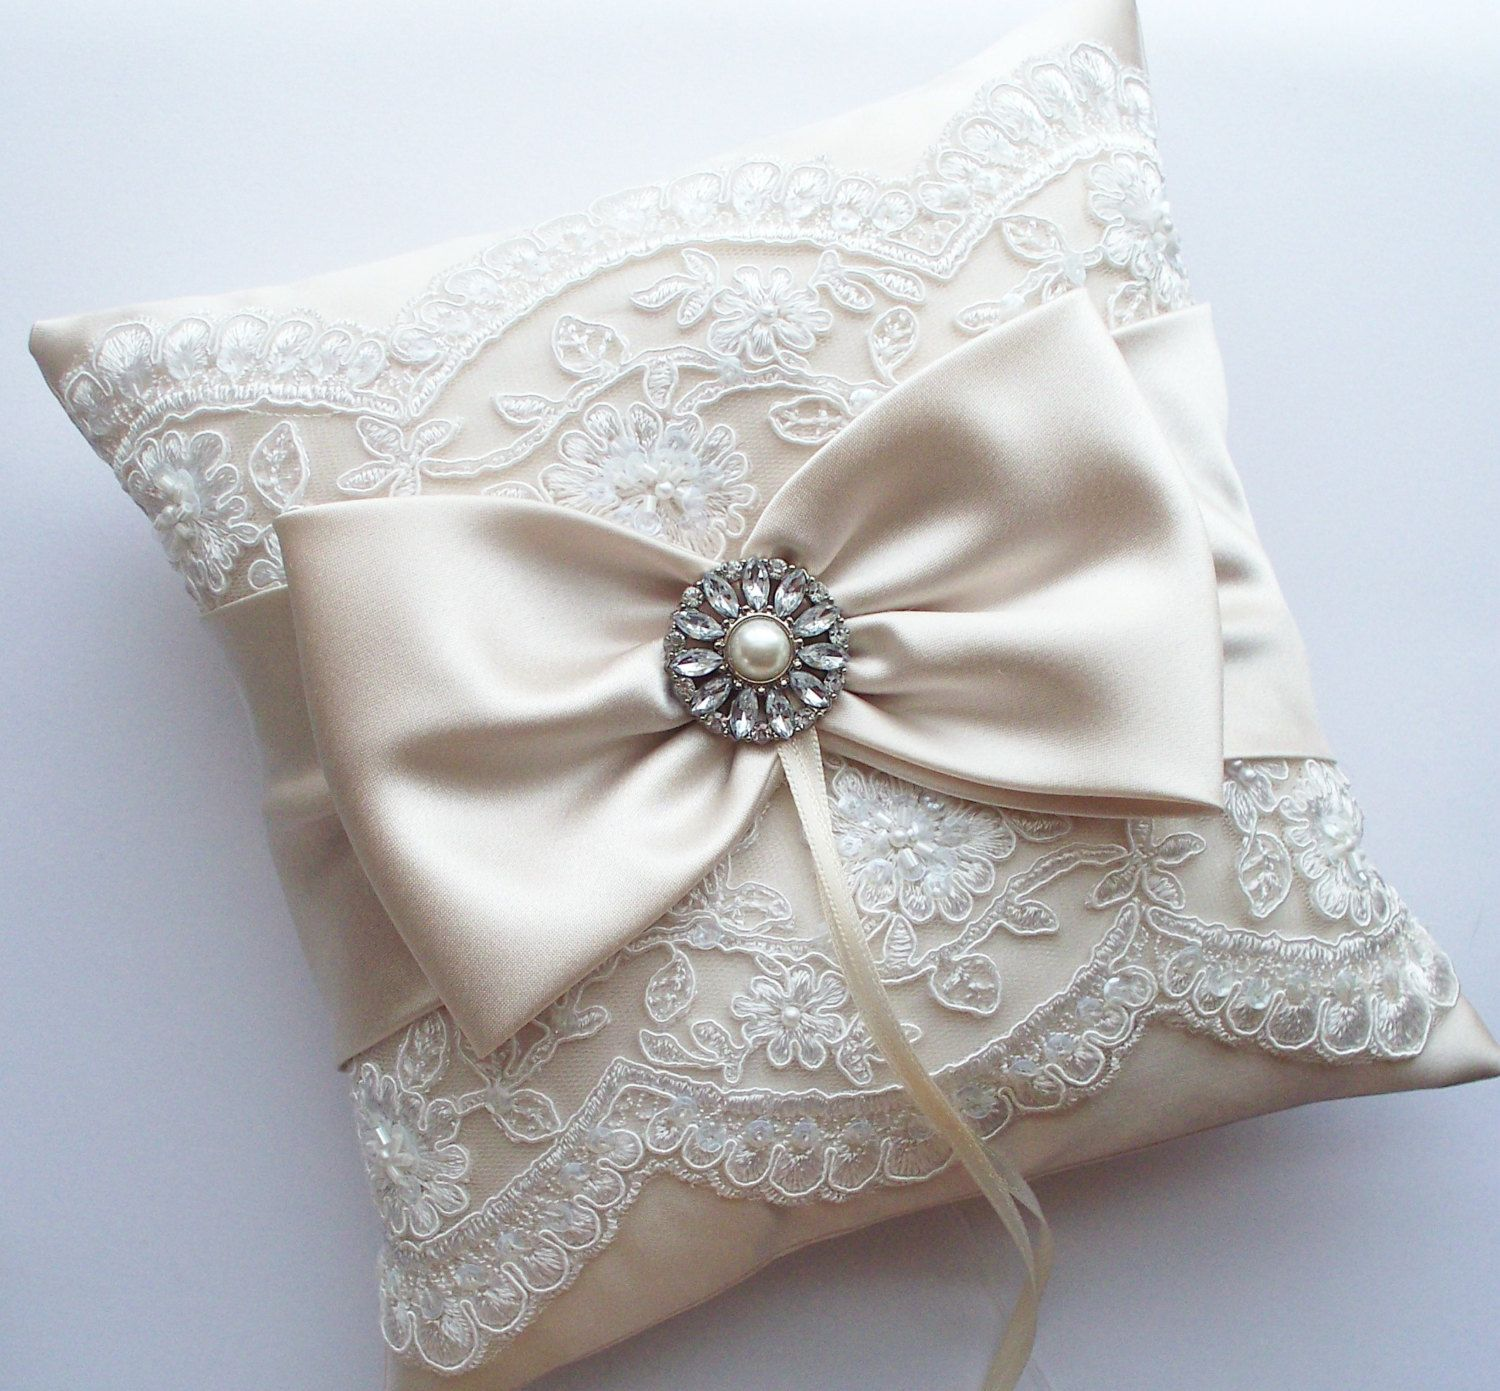 formal product the girl ring basket sequied fabric children pillow wedding put store in boy flower pillows supplies